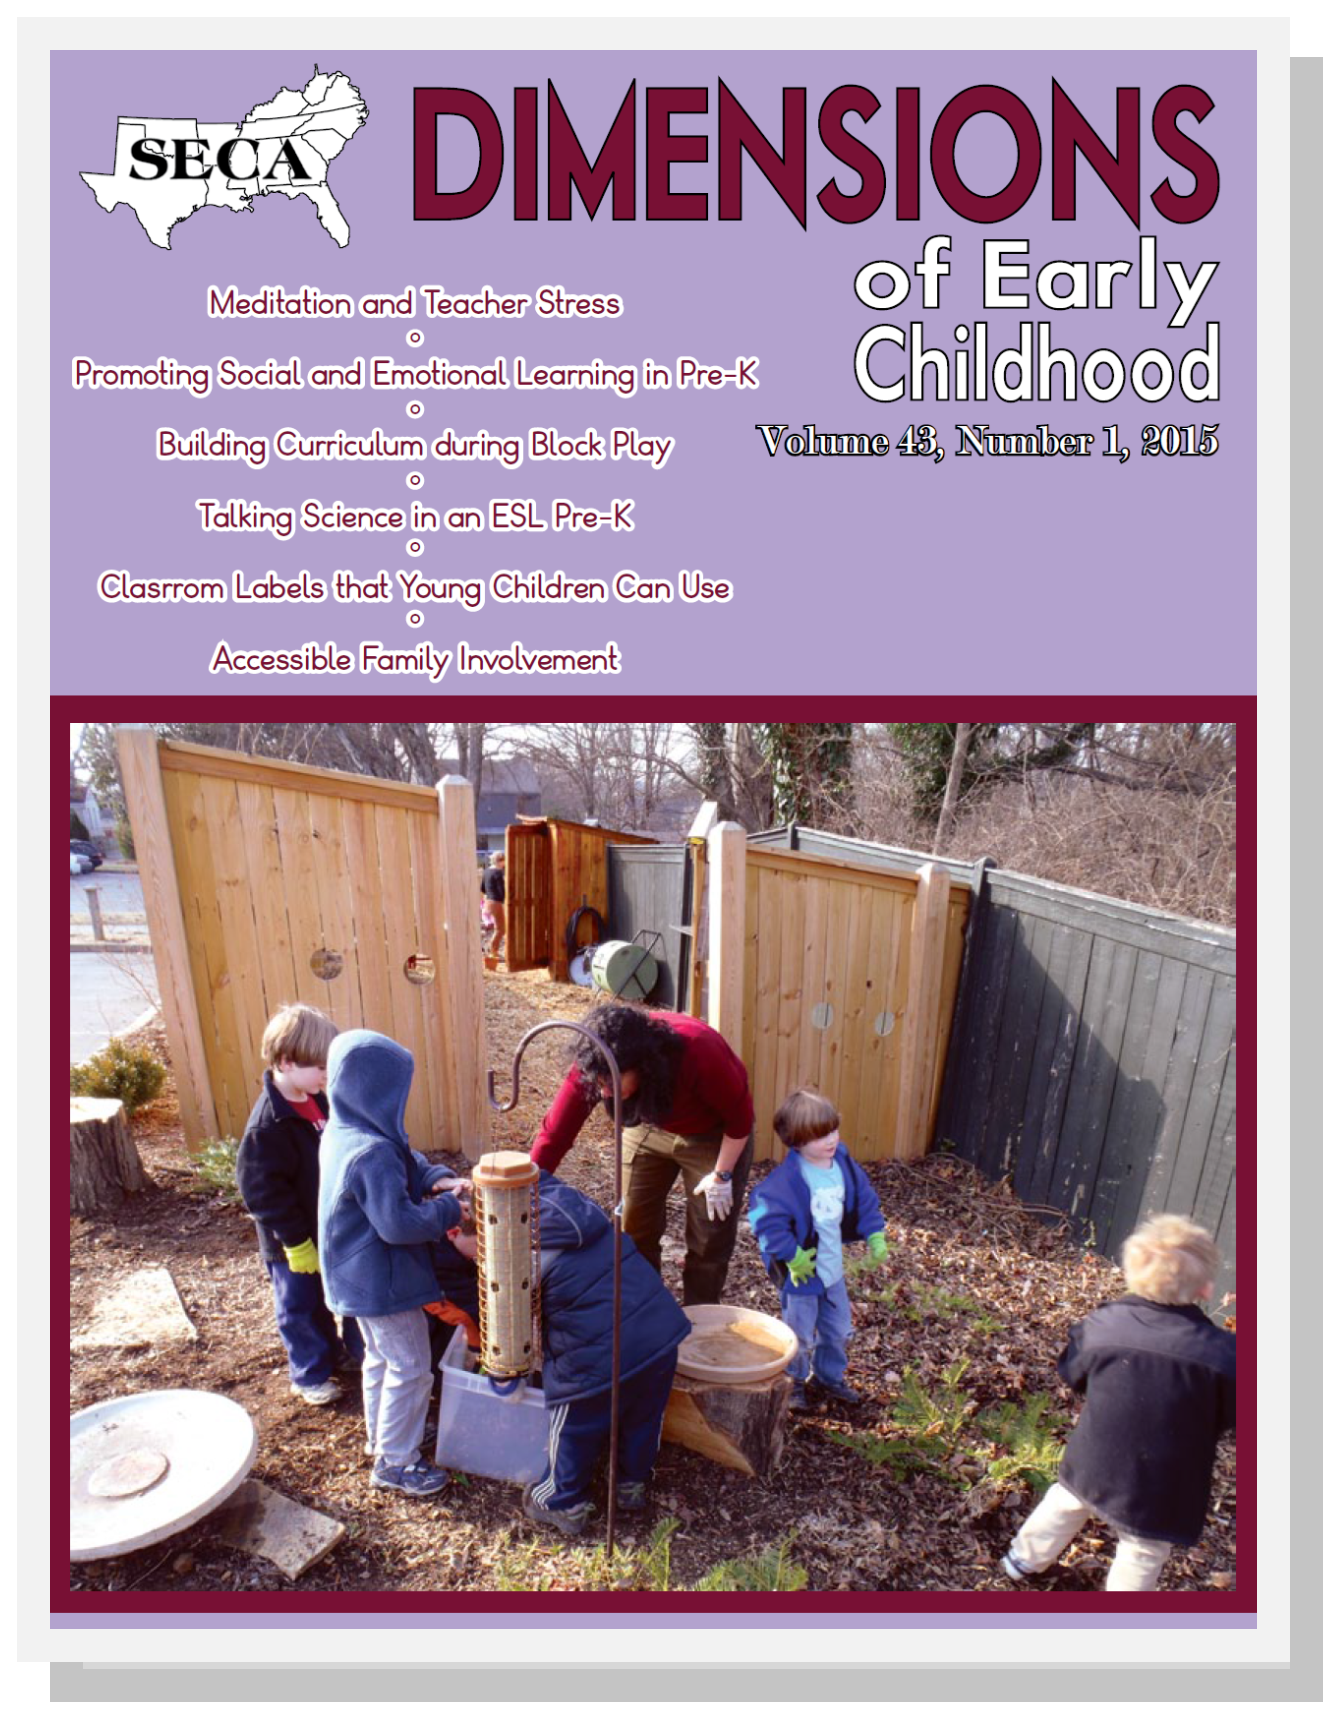 Winter 2015 - Meditation and Teacher Stress | Promoting Social and Emotional Learning in Pre-K | Building Curriculum during Block Play | Talking Science in an ESL Pre-K | Clasrrom Labels that Young Children Can Use | Accessible Family Involvement